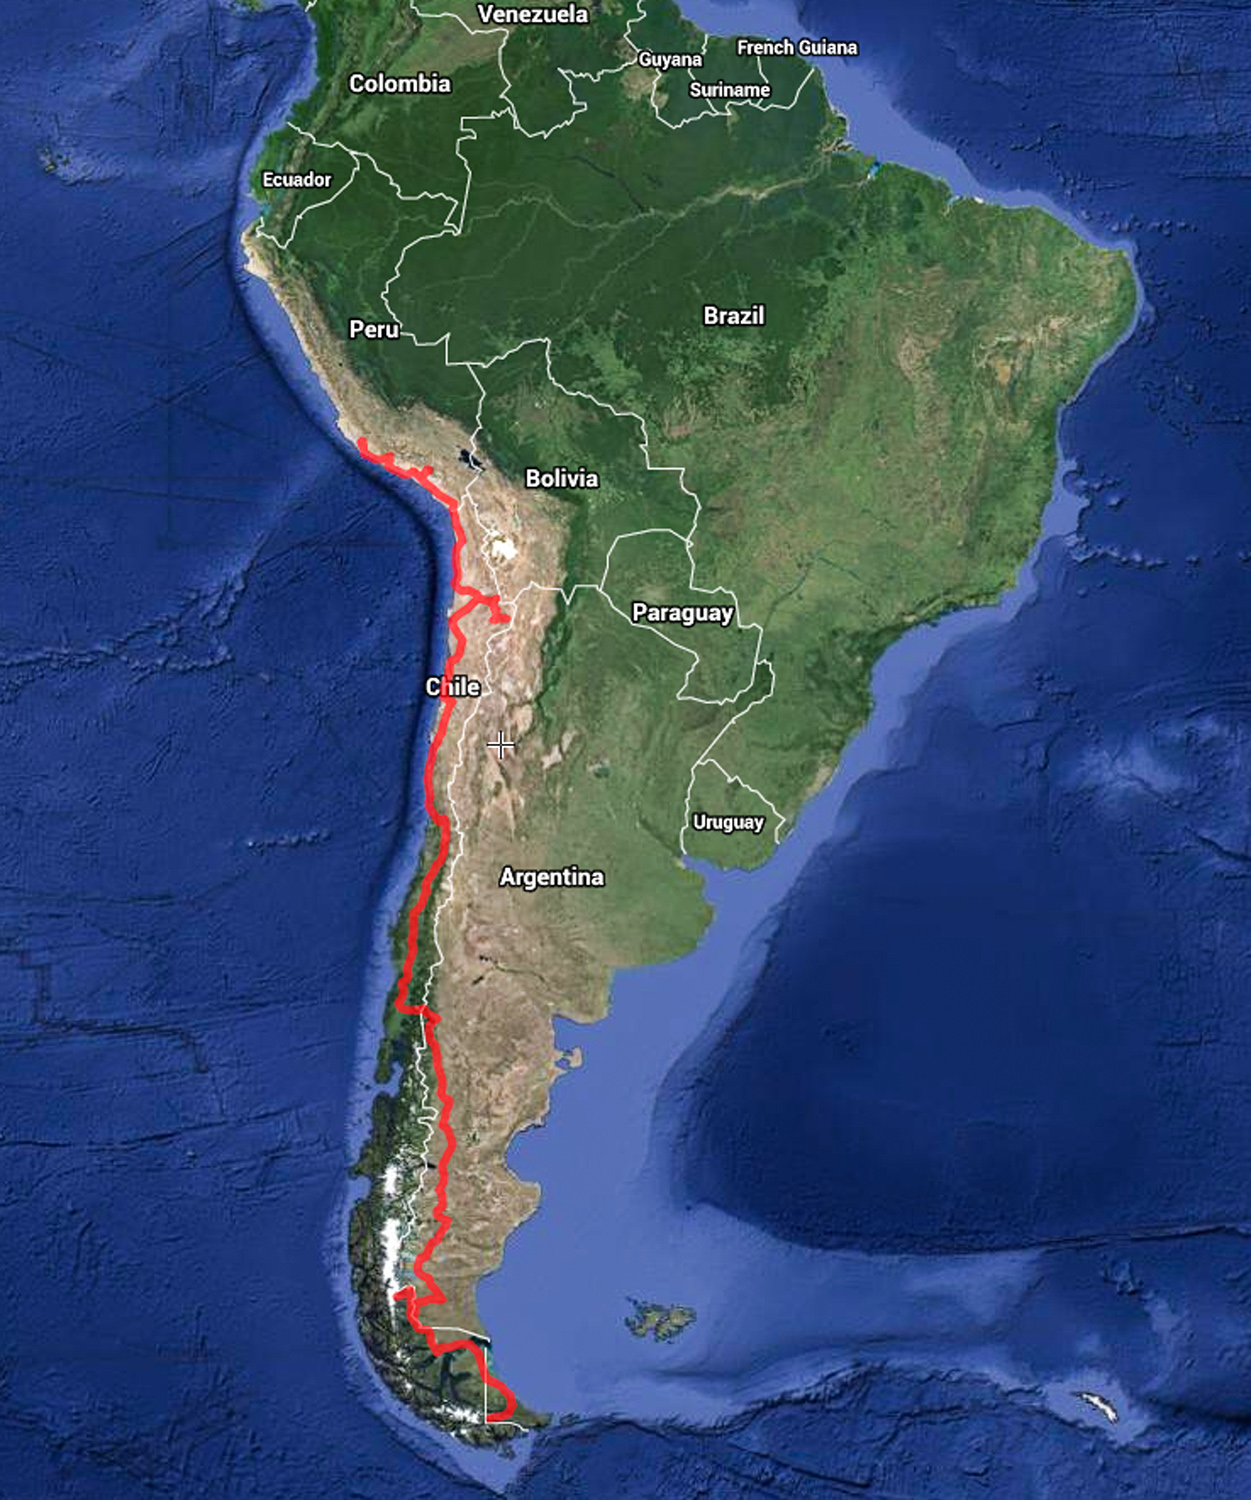 [CLICK MAP TO ENLARGE]  The journey: Ushuaia, Argentina to Arequipa, Peru, via Ruta 40 and the Pan-American Highway. 9,855 kilometers /6,124miles. 167 hours driving. 23 days total. 7 nights camping. 16 nights hostels or hotels.  Longest mileage day: 416 miles / 9 hours.  Diesel per gallon: $3.00–$4.81. Average MPG: 25.